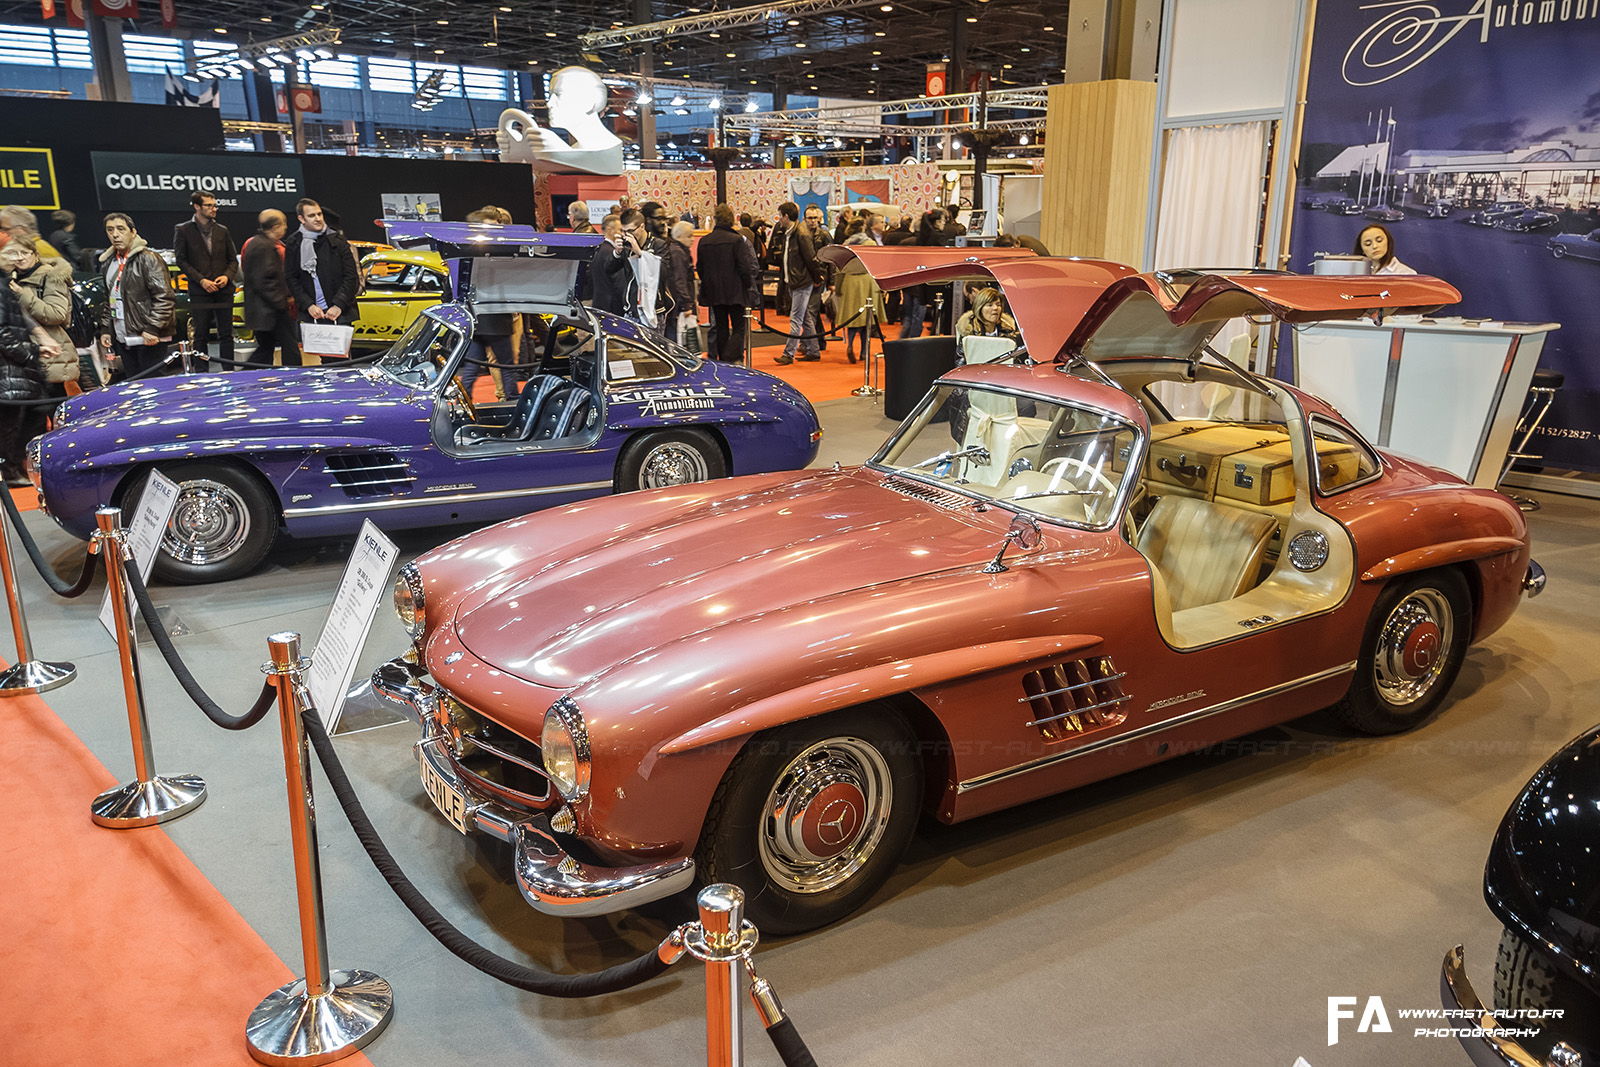 salon retromobile fevrier 2014 mercedes 300sl kienle strawberry retromobile 2014 paris. Black Bedroom Furniture Sets. Home Design Ideas